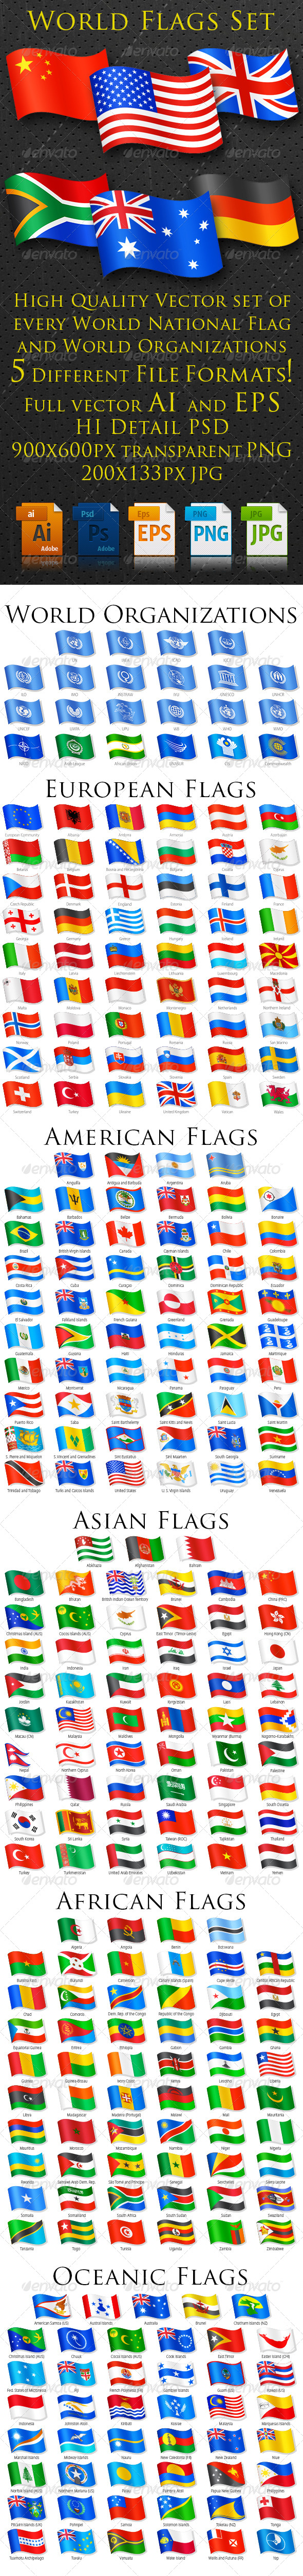 GraphicRiver World Flags Complete Set 7812184